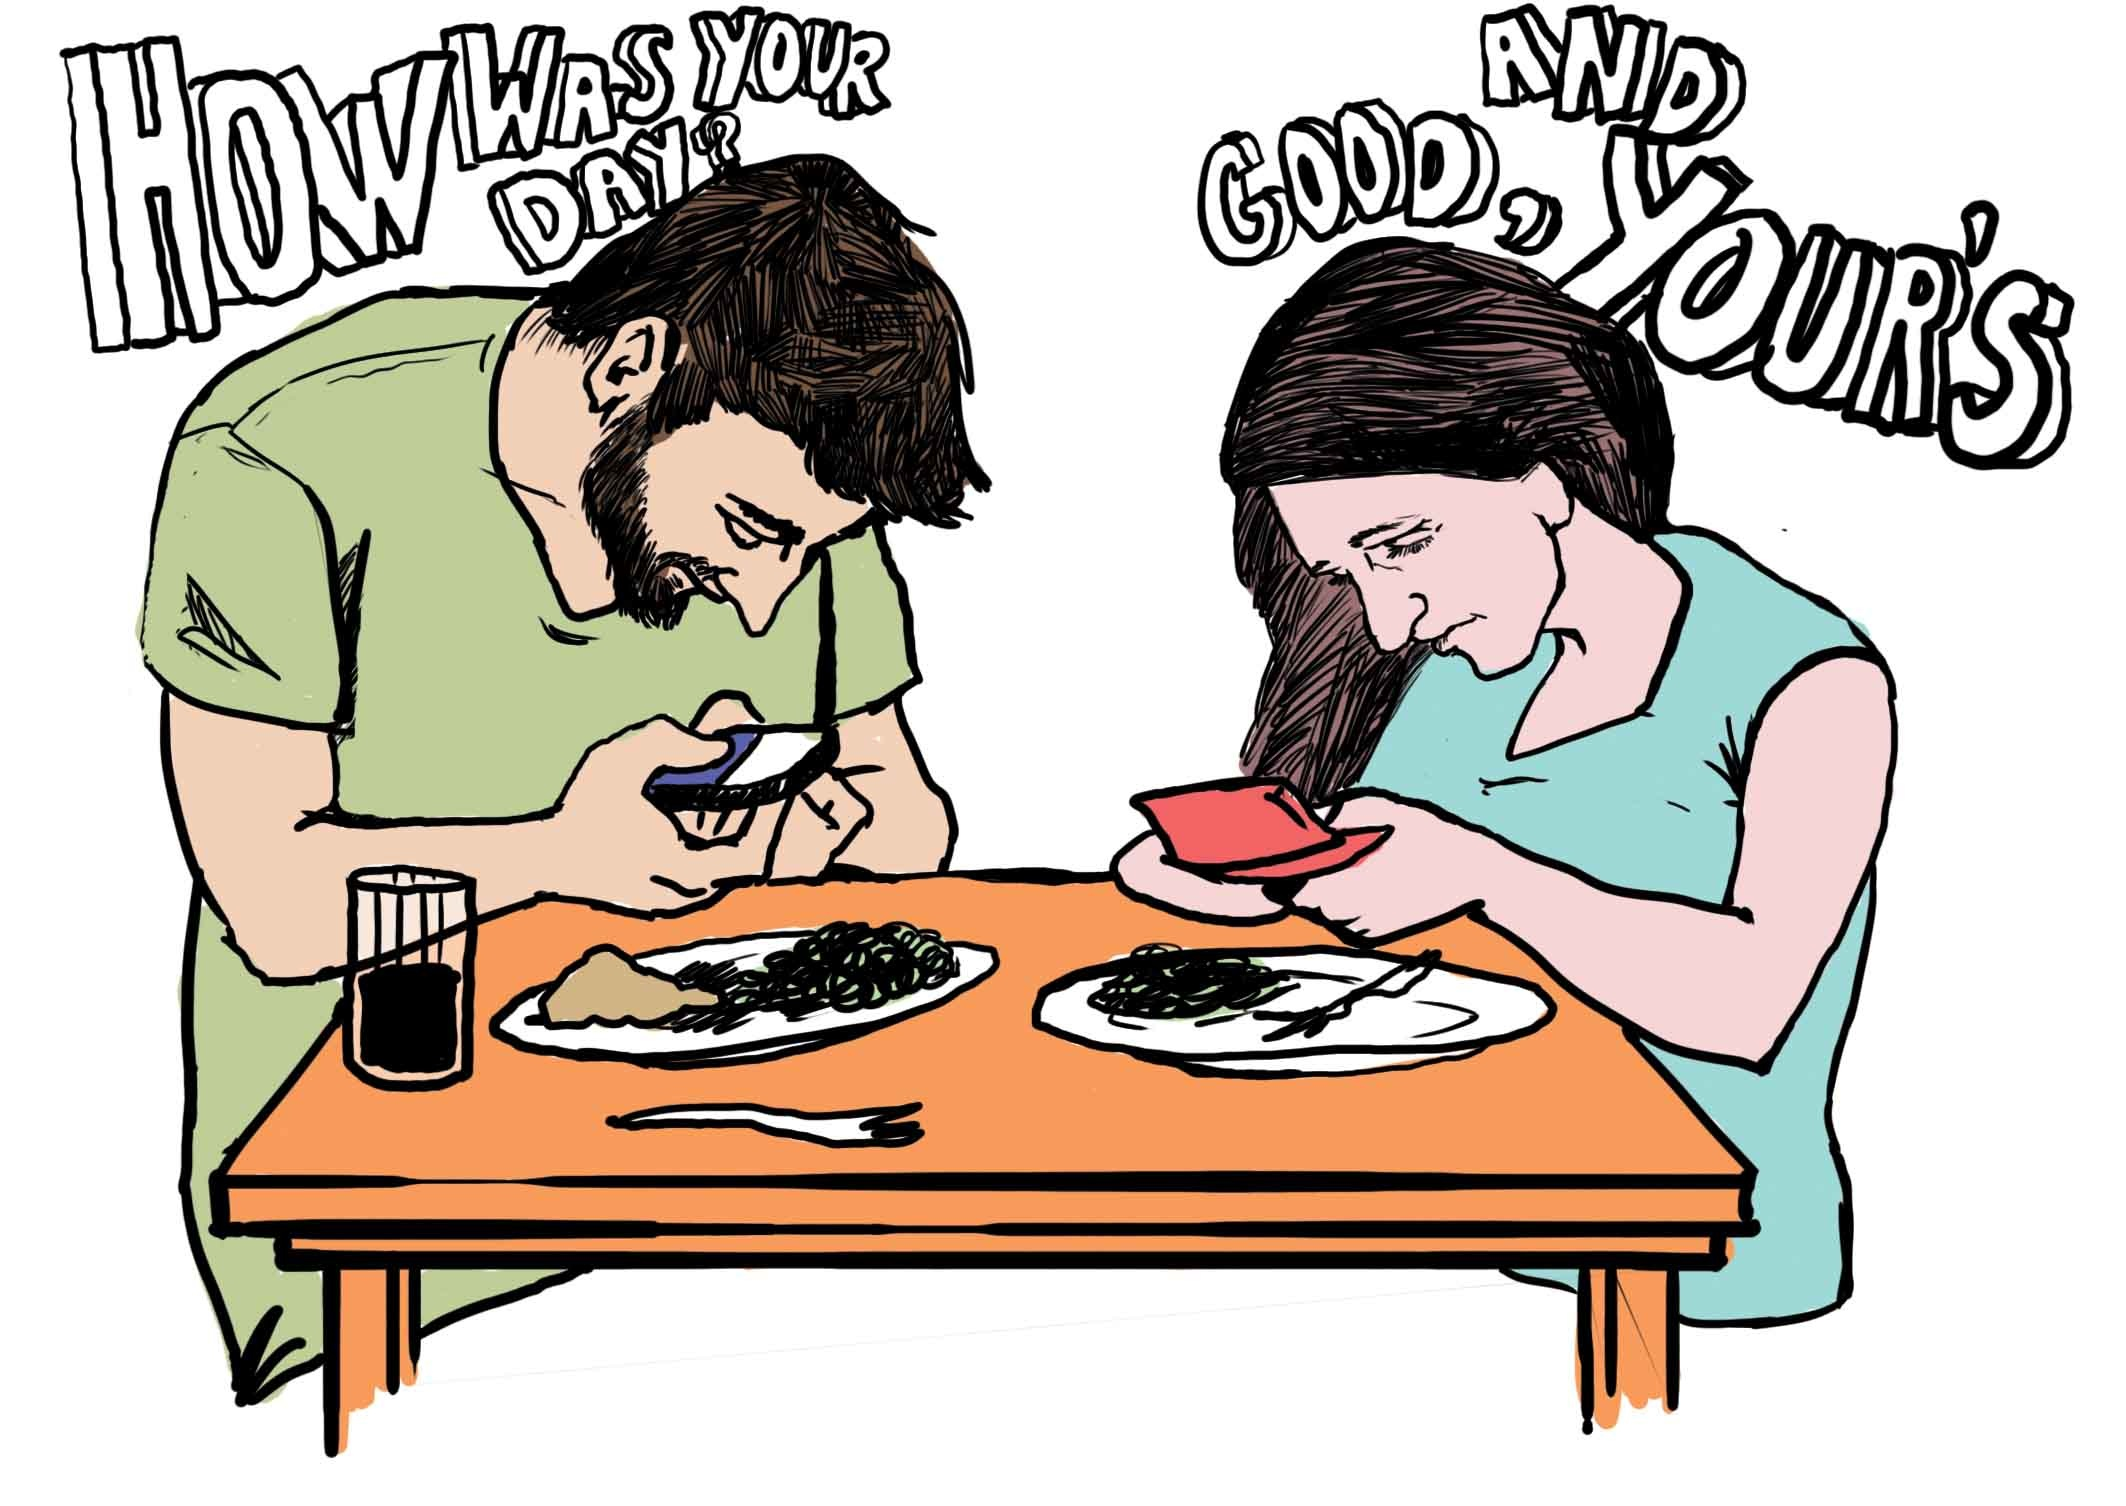 Texting while eating